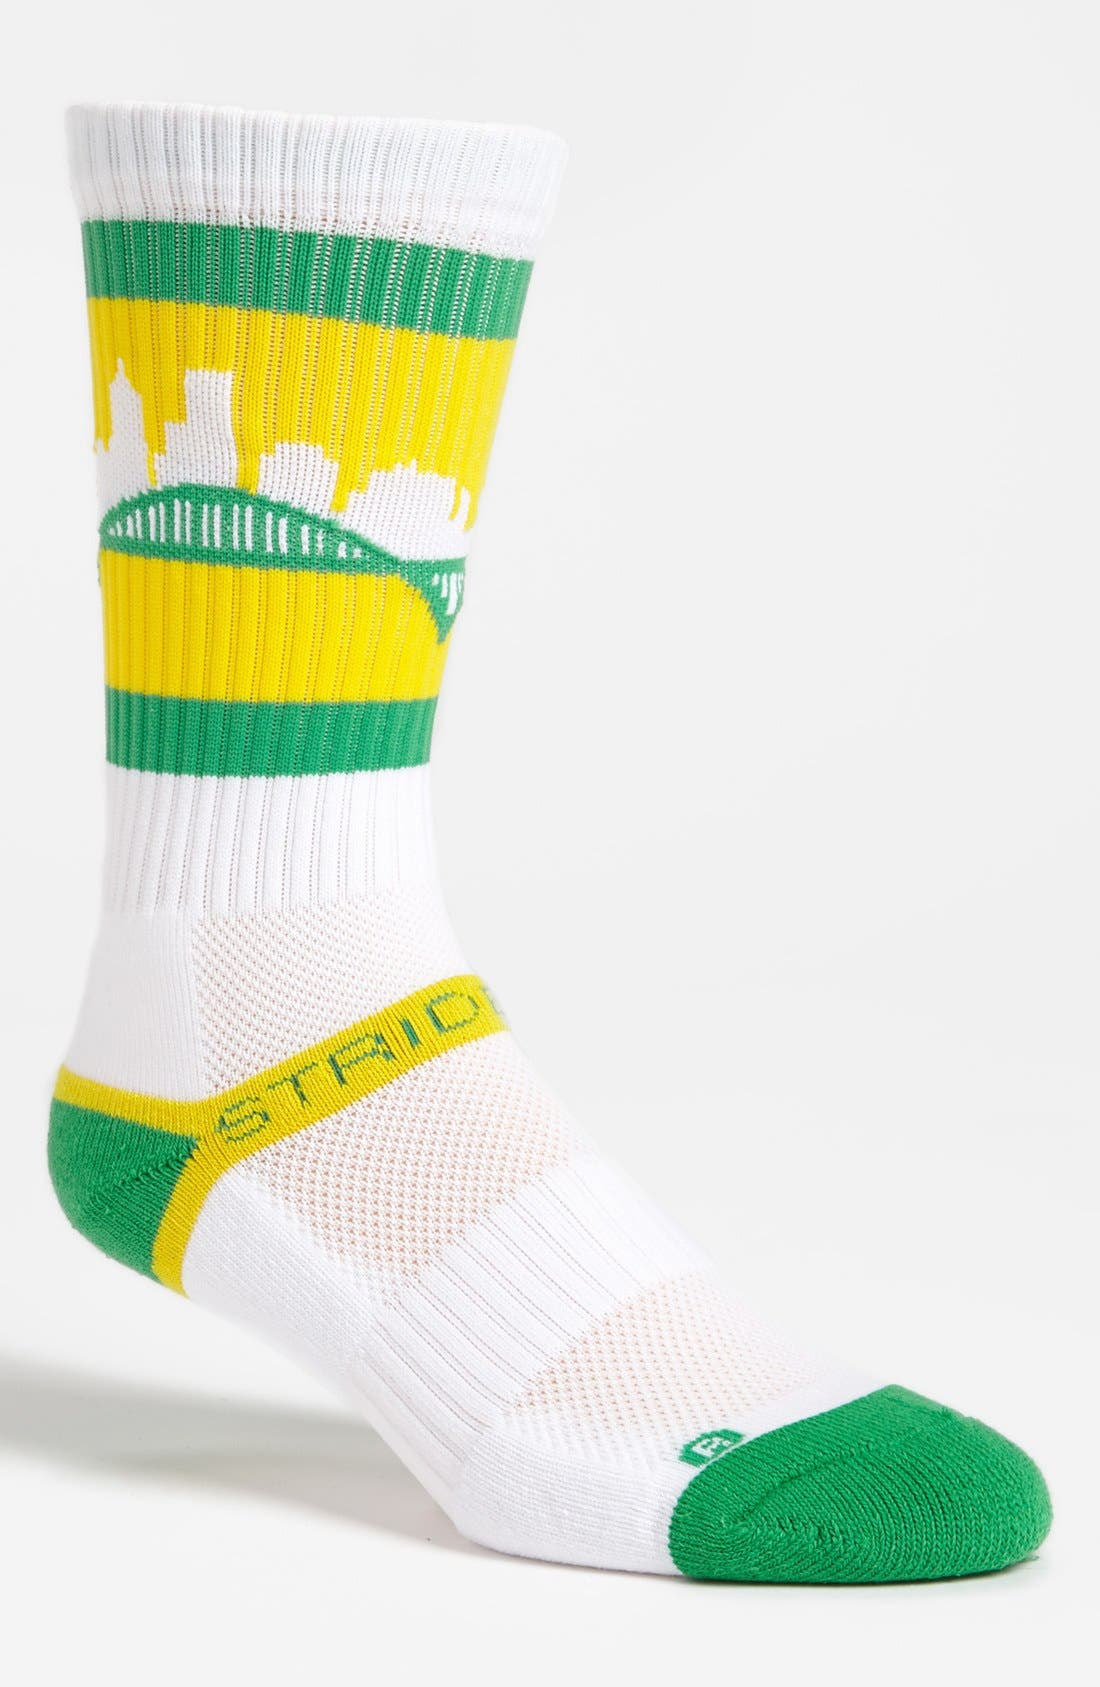 Alternate Image 1 Selected - STRIDELINE 'Portland' Socks